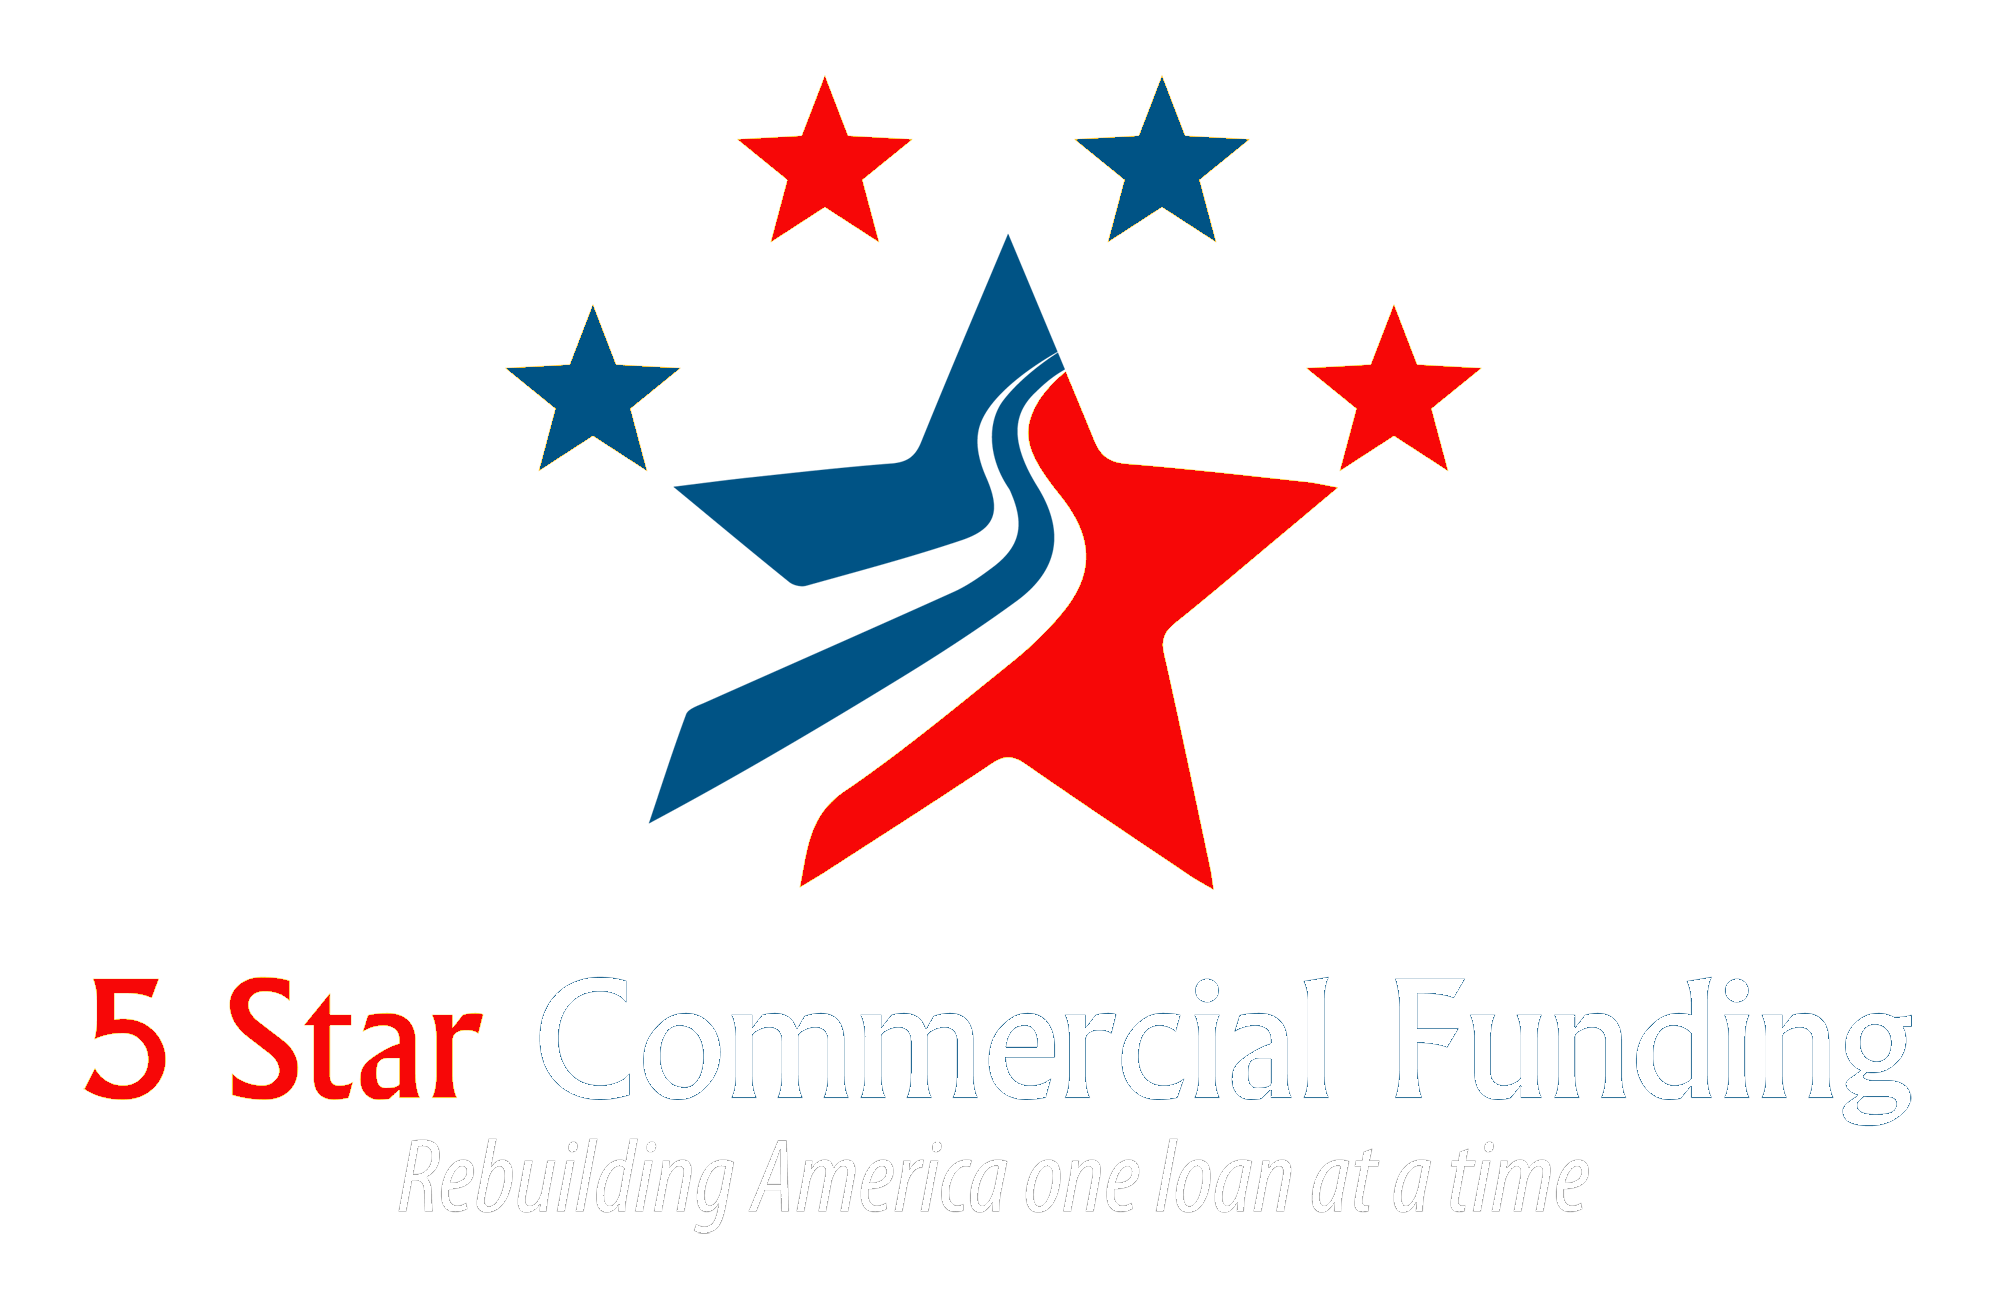 5 Star Commercial Funding